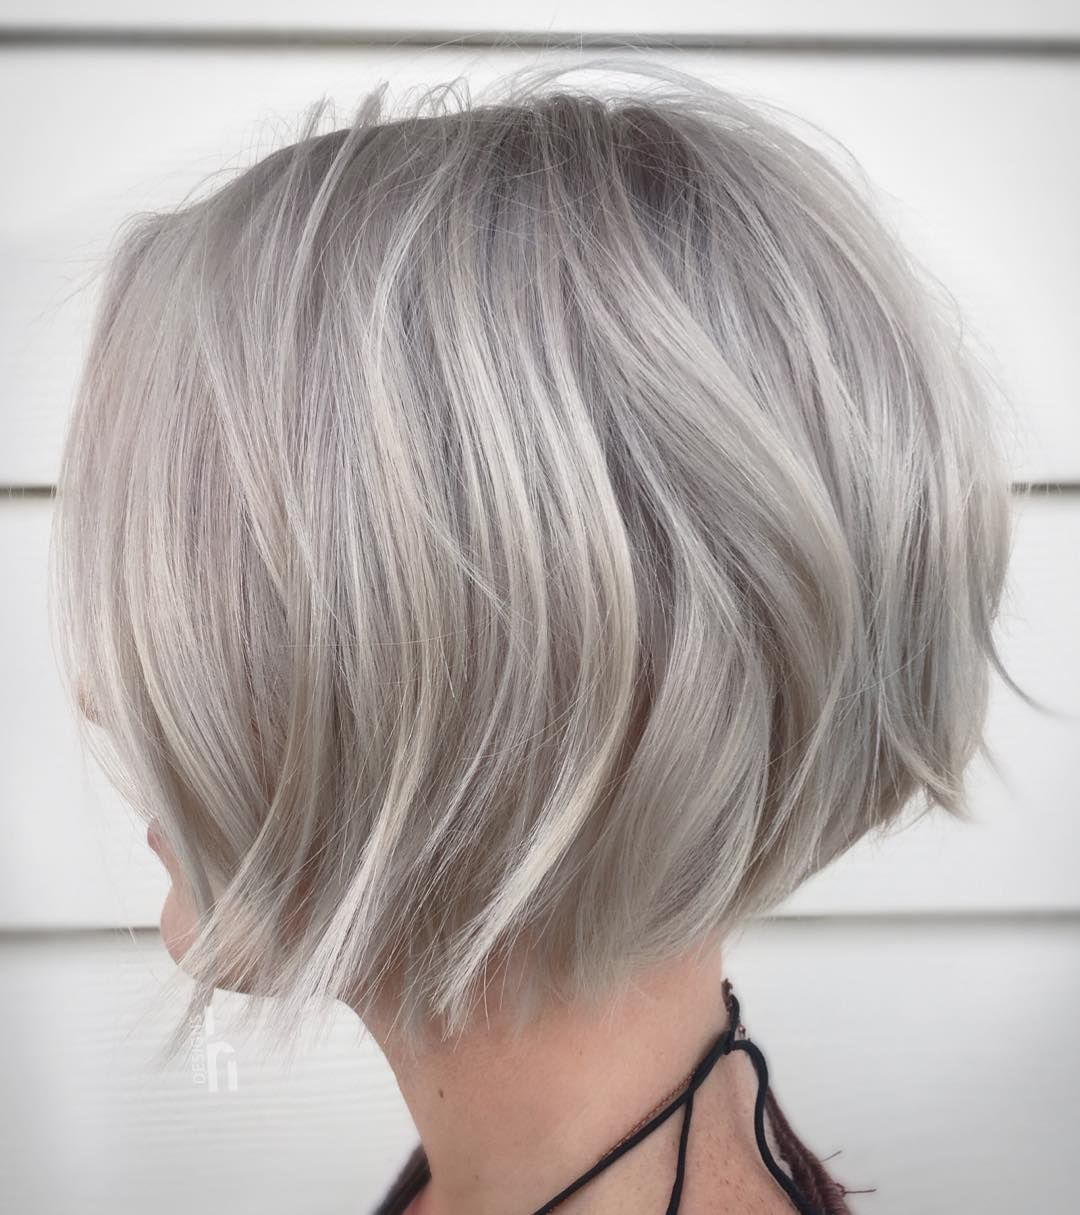 Chic Medium Bob Haircut For Women Shoulder Length Bob Hairstyle Designs Haircuts For Medium Hair Medium Bob Haircut Bob Haircuts For Women